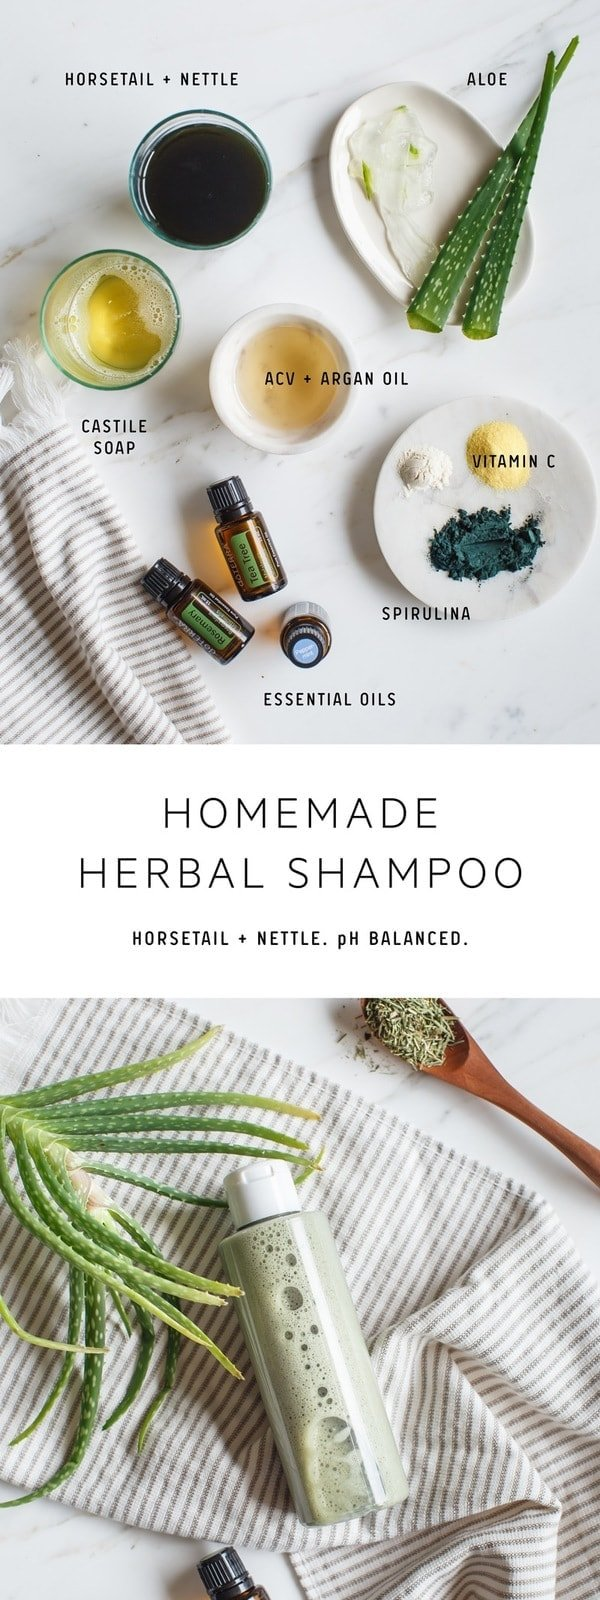 A natural, DIY shampoo made from horsetail and nettle to nourish, strengthen and promote